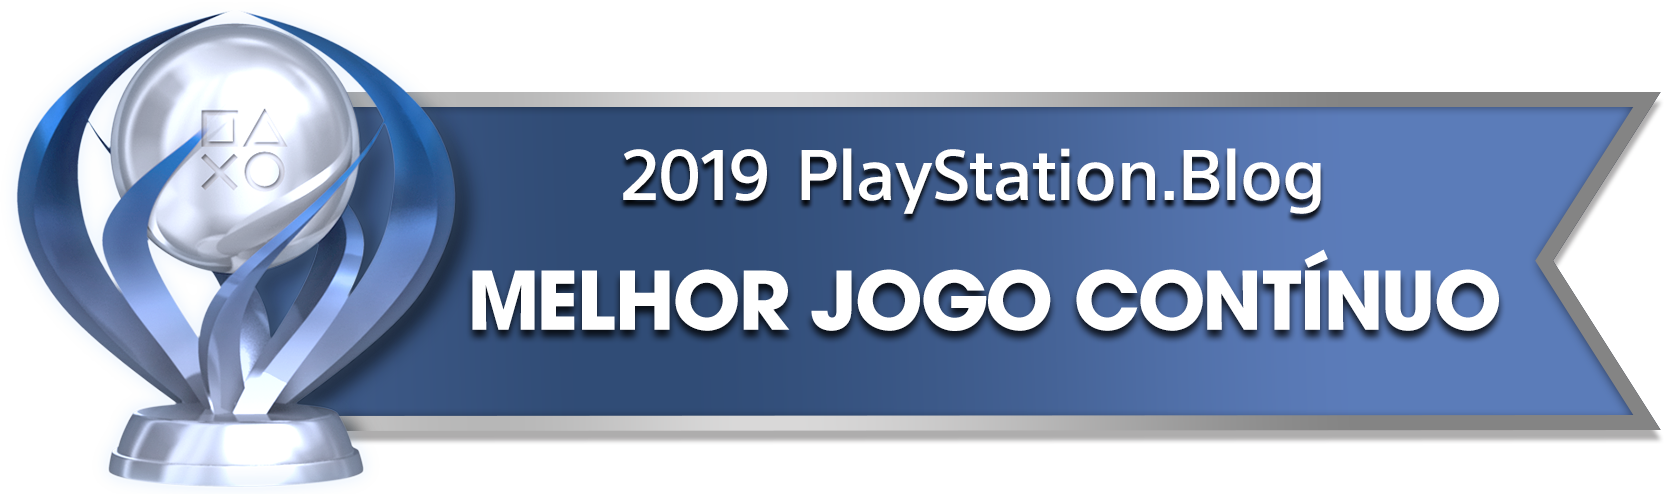 PS Blog Game of the Year 2019 - Best Ongoing Game - 1 - Platinum